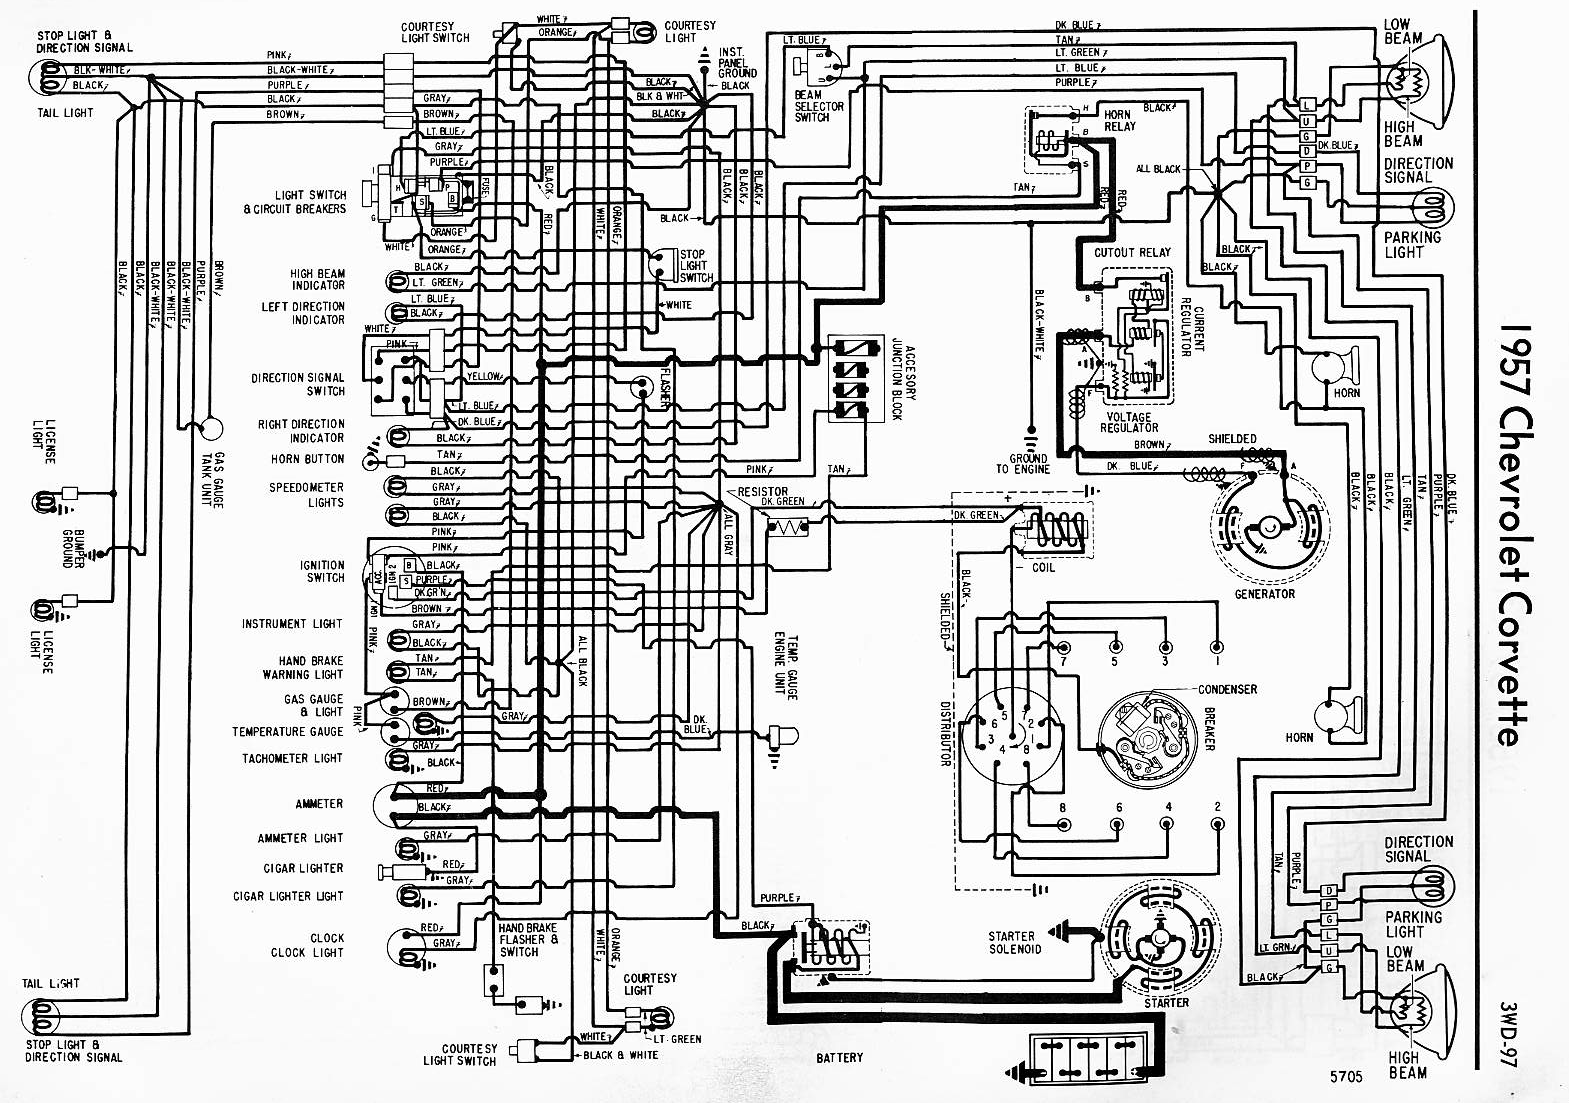 hight resolution of 1975 corvette wiring diagram wiring diagram third level 1980 corvette fuse box diagram 1981 corvette wiring diagram